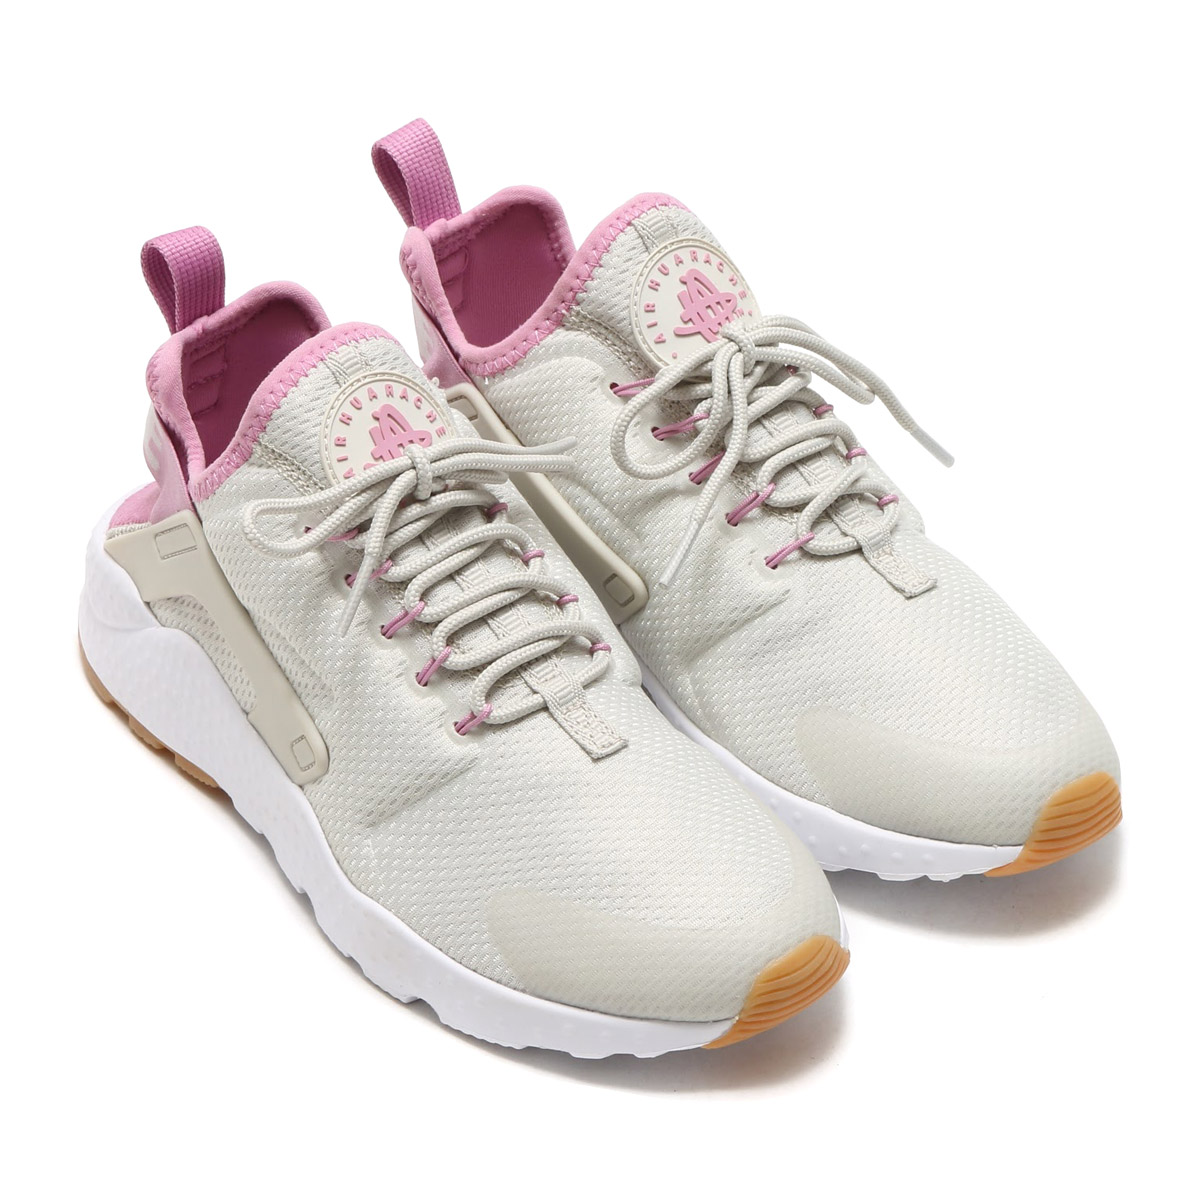 d043ed614ae5 NIKE WMNS AIR HUARACHE RUN ULTRA (ナイキウィメンズエアハラチランウルトラ) LIGHT BONE ORCHID-GUM  YELLOW-WHITE 17SU-I